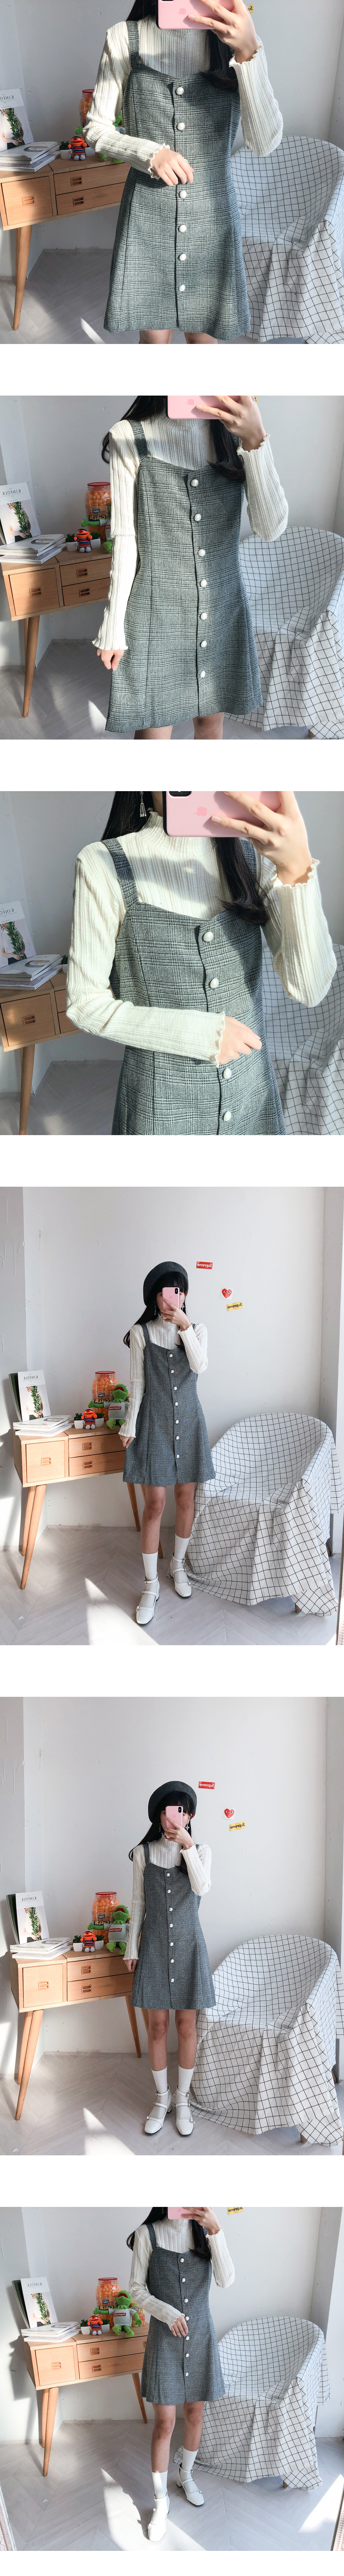 Marie Check pearl dress